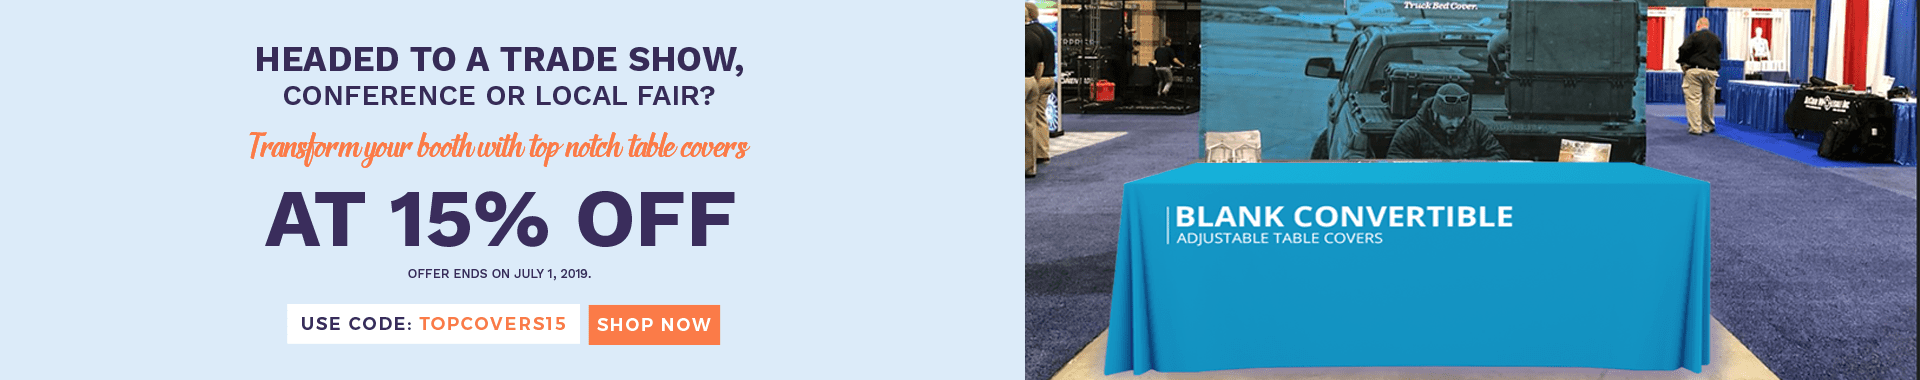 Transform your booth with top notch table covers at 15% off.